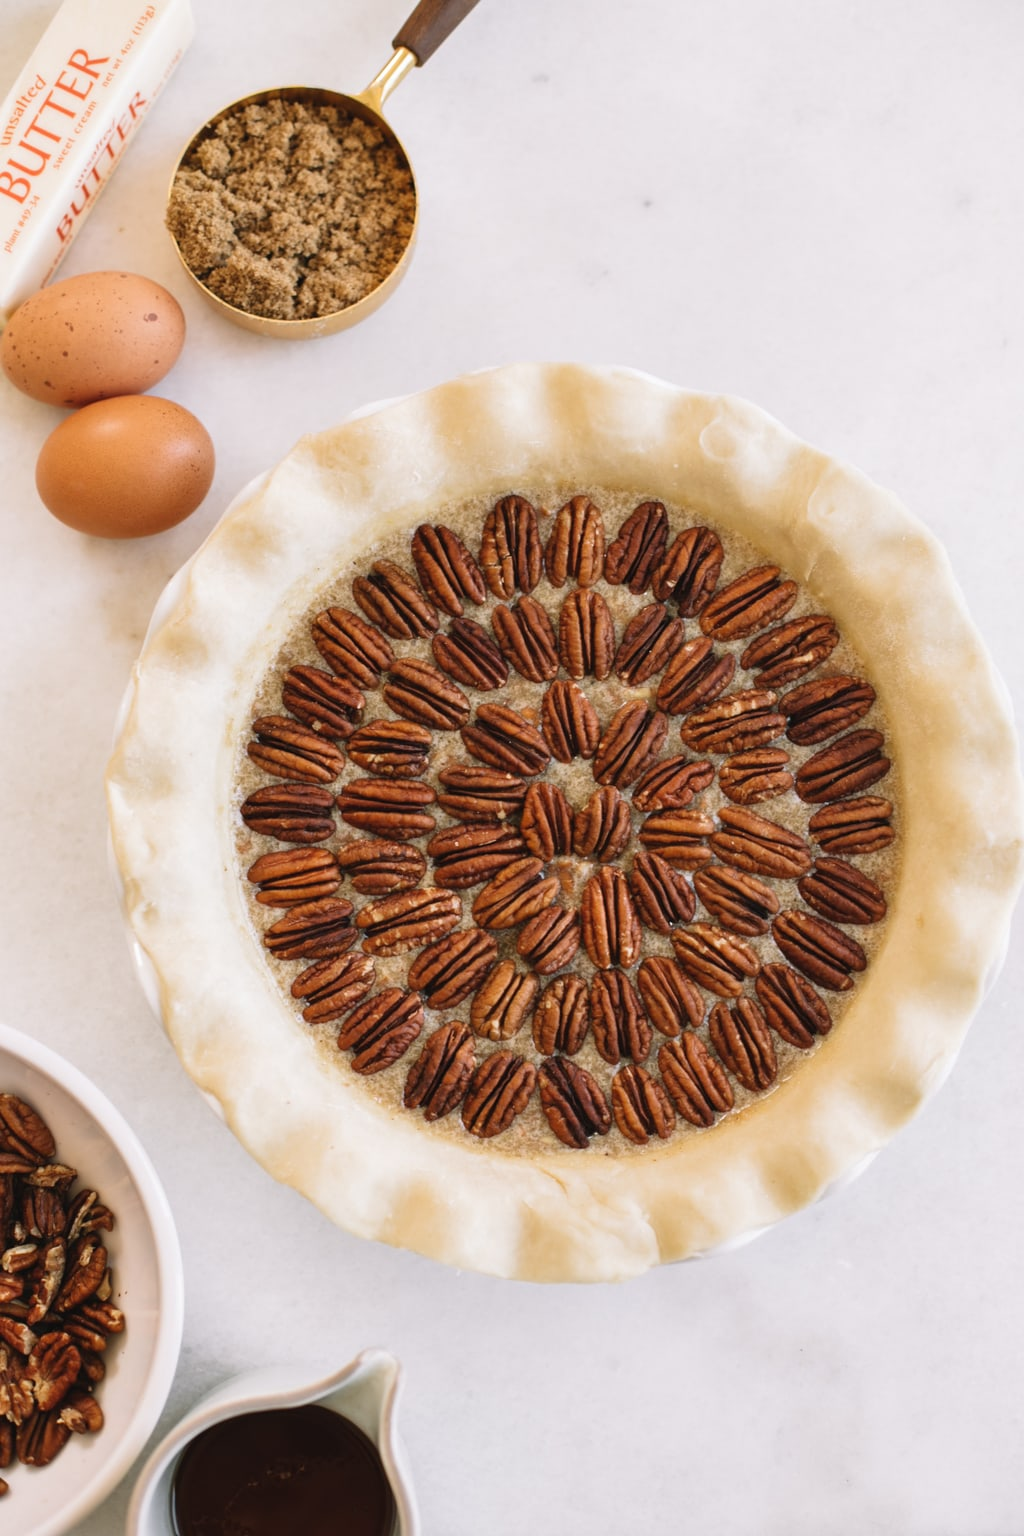 pecans placed in concentric circles in homemade pie crust in white pie dish with two eggs on the side